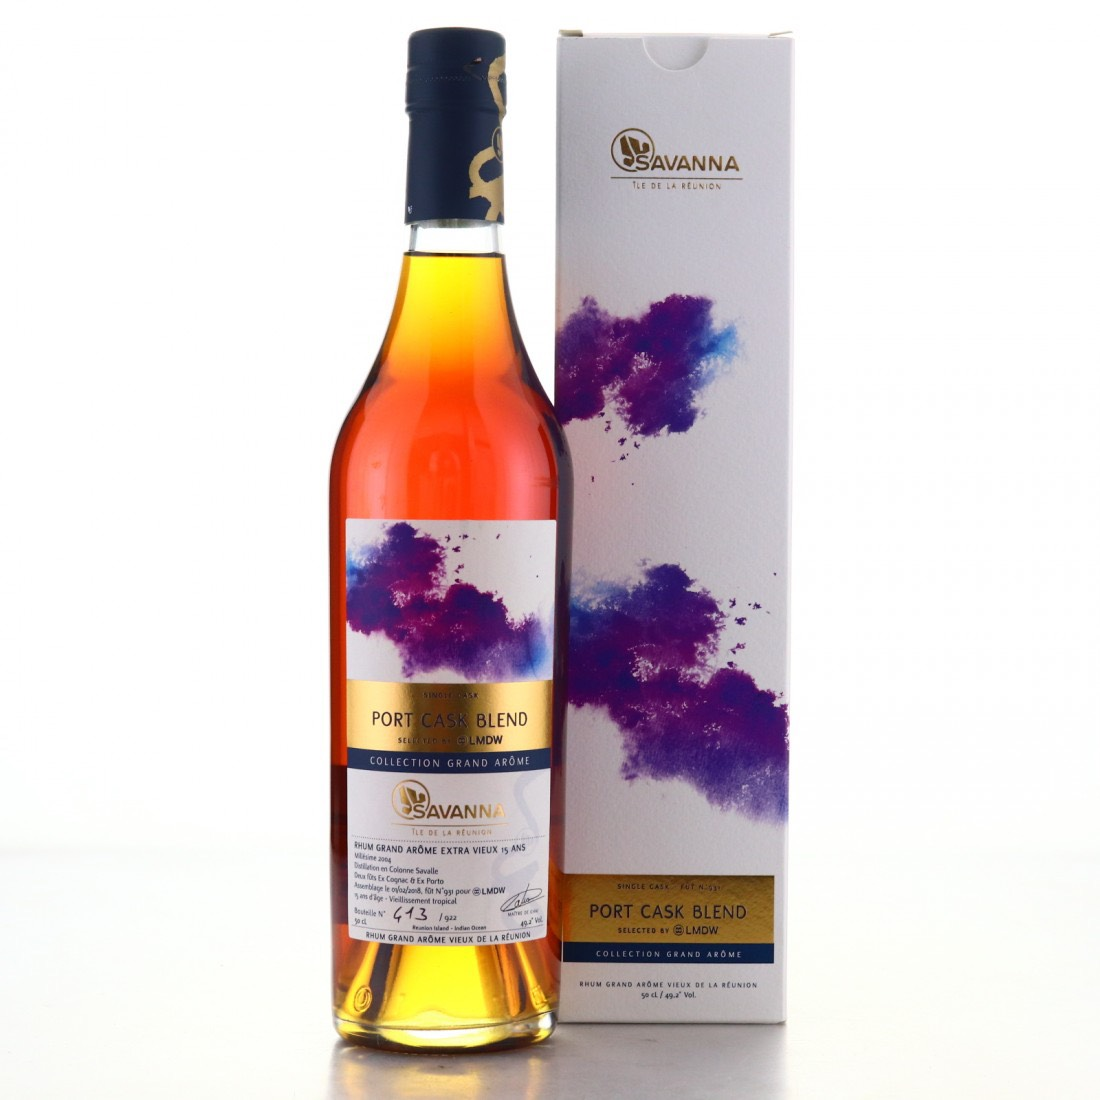 Bottle image of Collection Grand Arôme Port Cask Blend LMDW